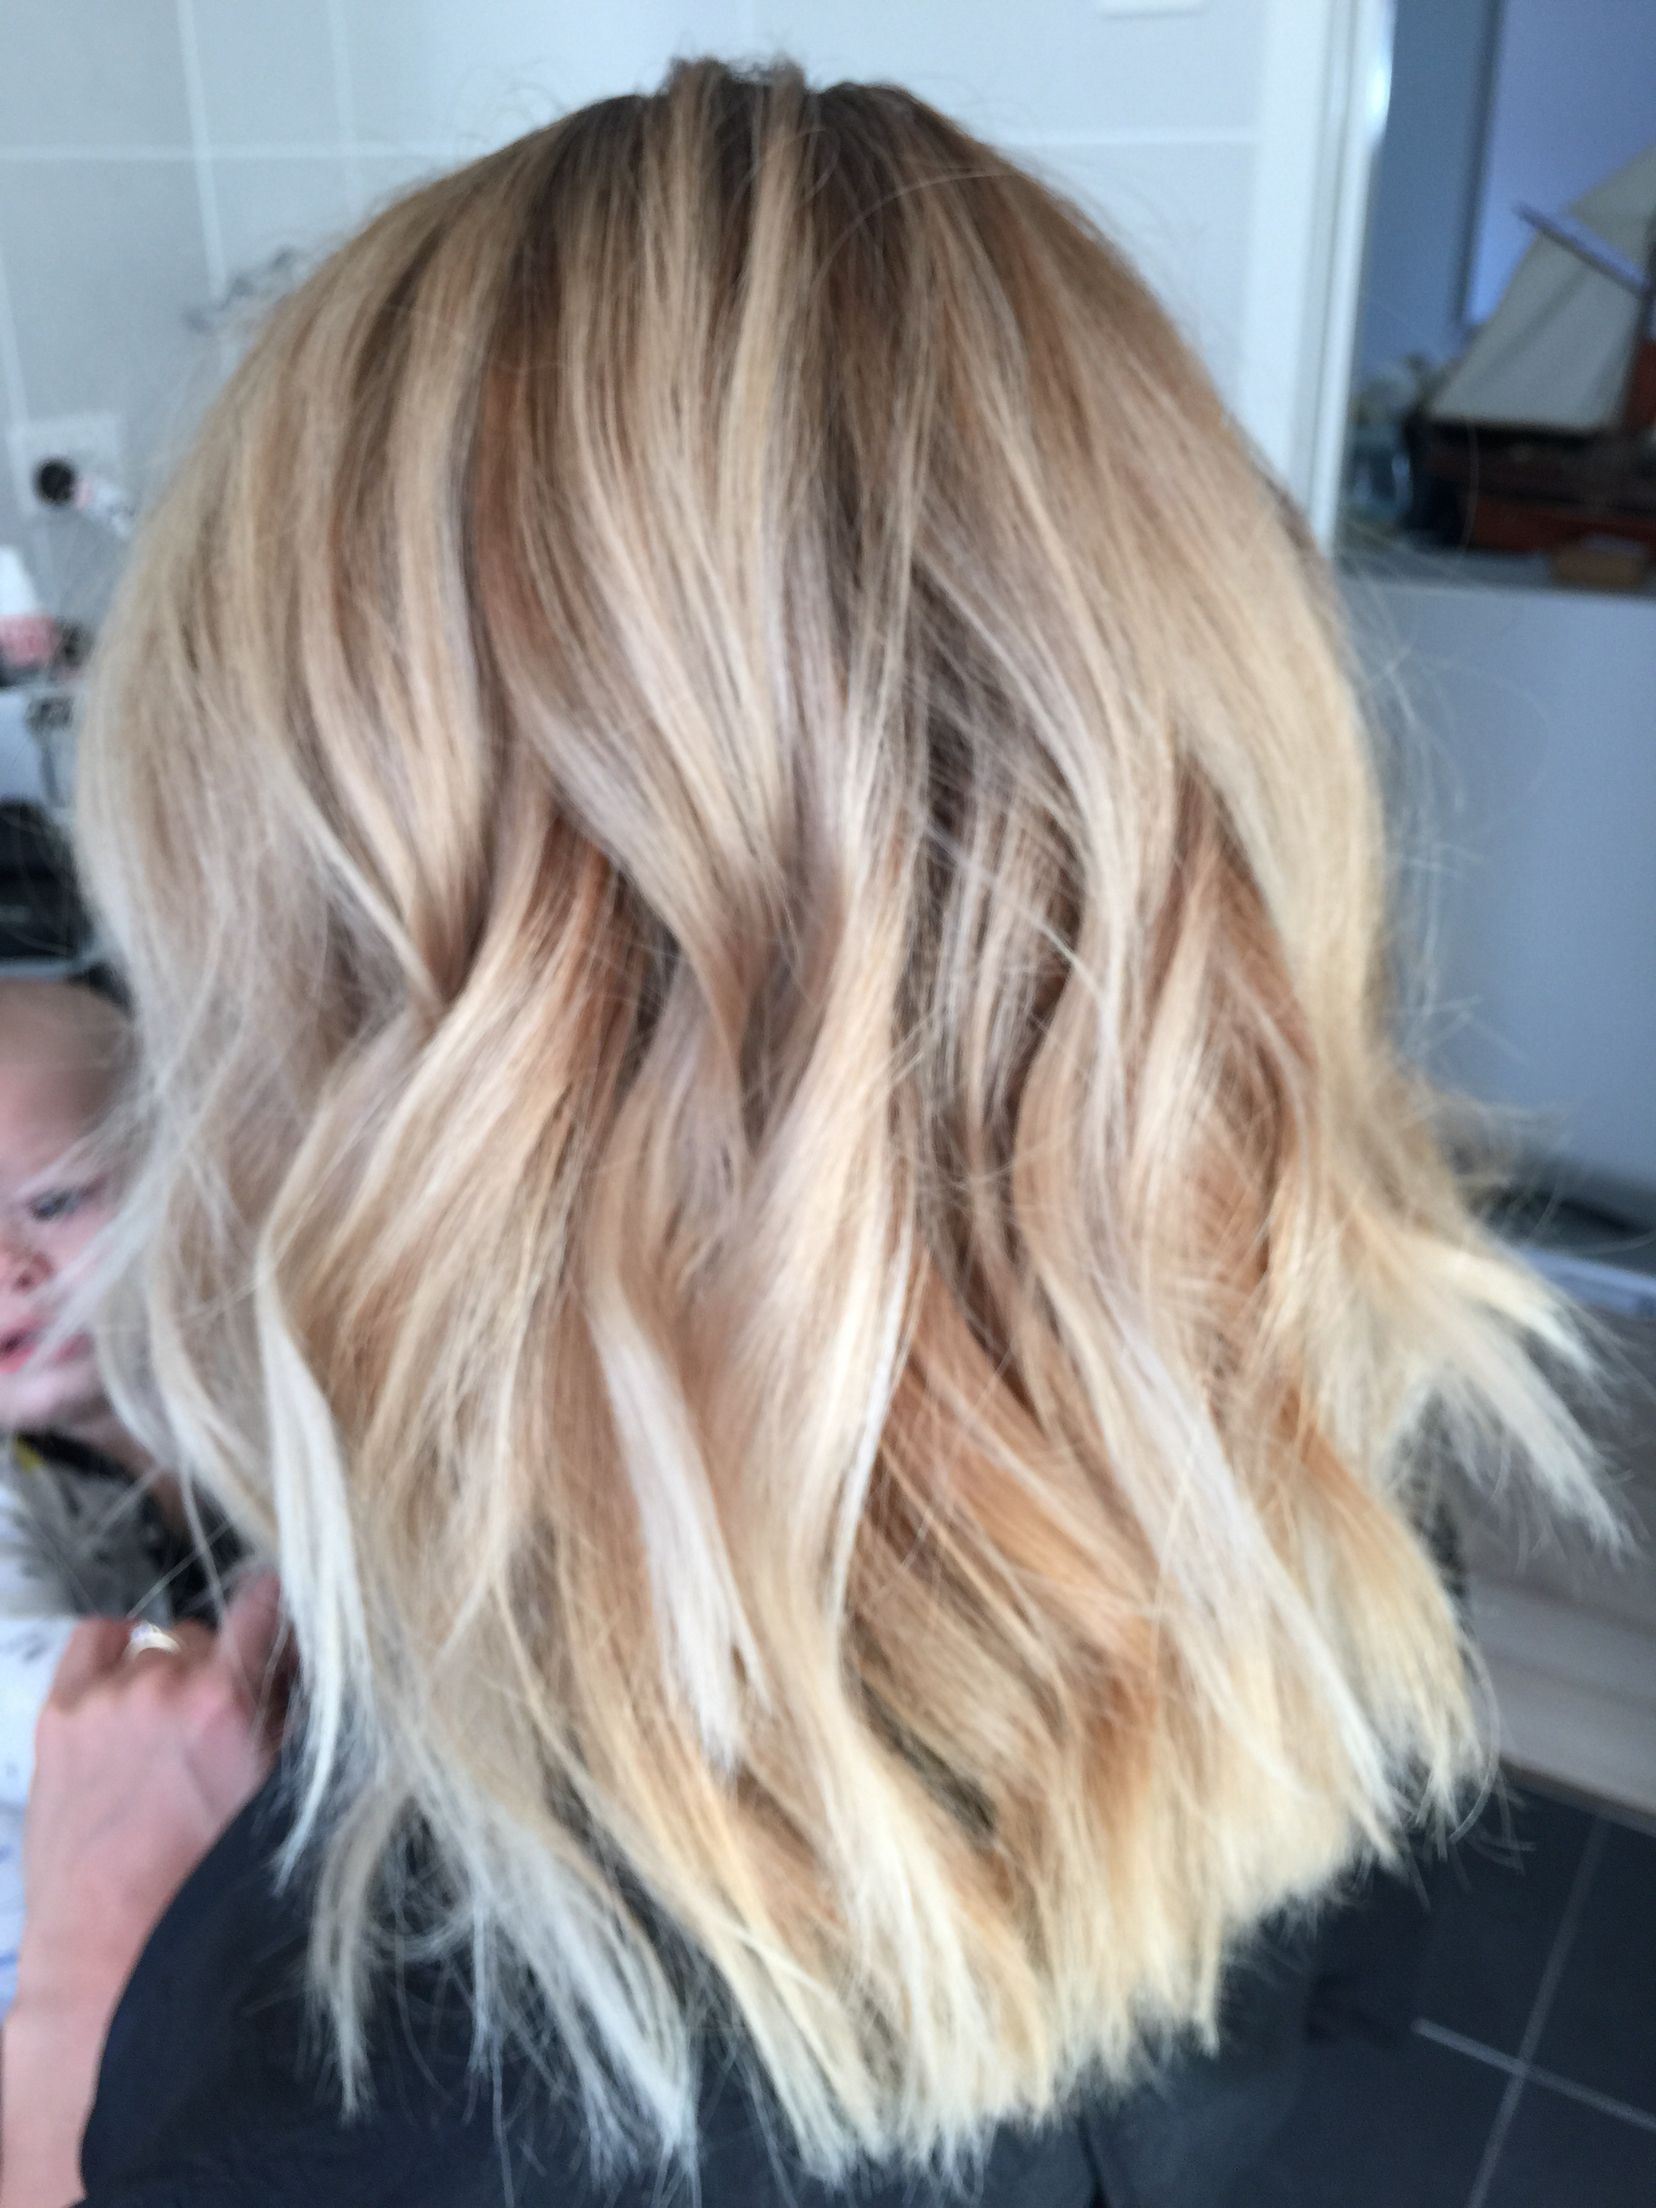 Ombr 233 Blonde Lob With A Textured Wave Hair Beauty